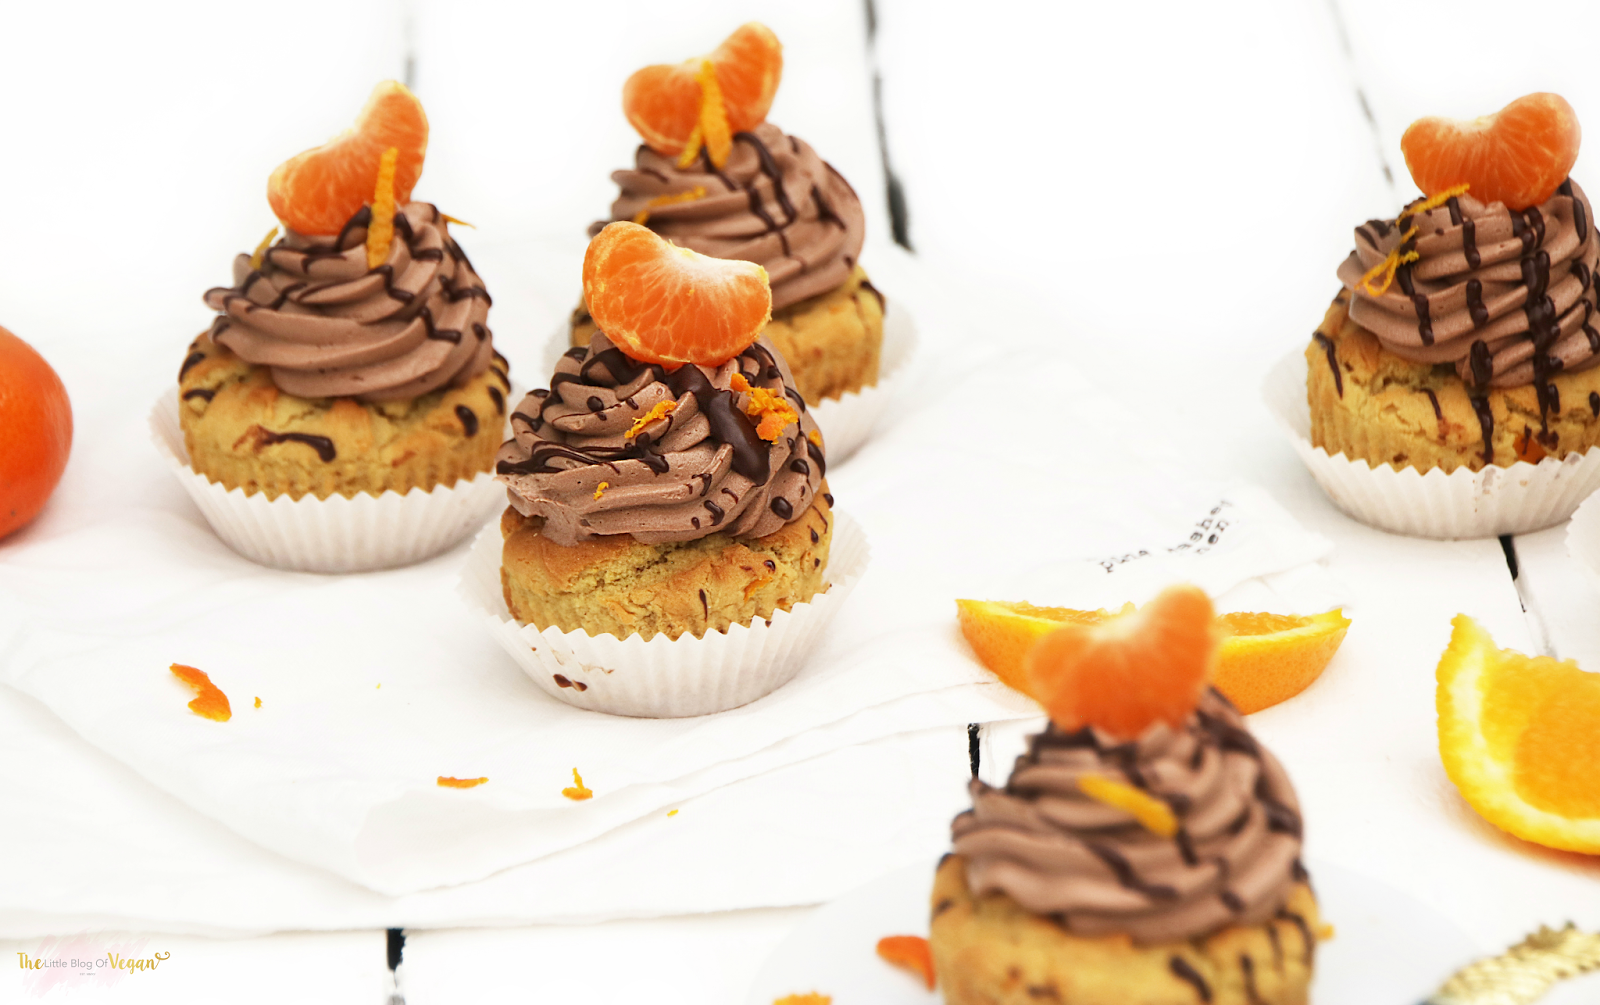 Chocolate Cupcakes With Egg Replacer